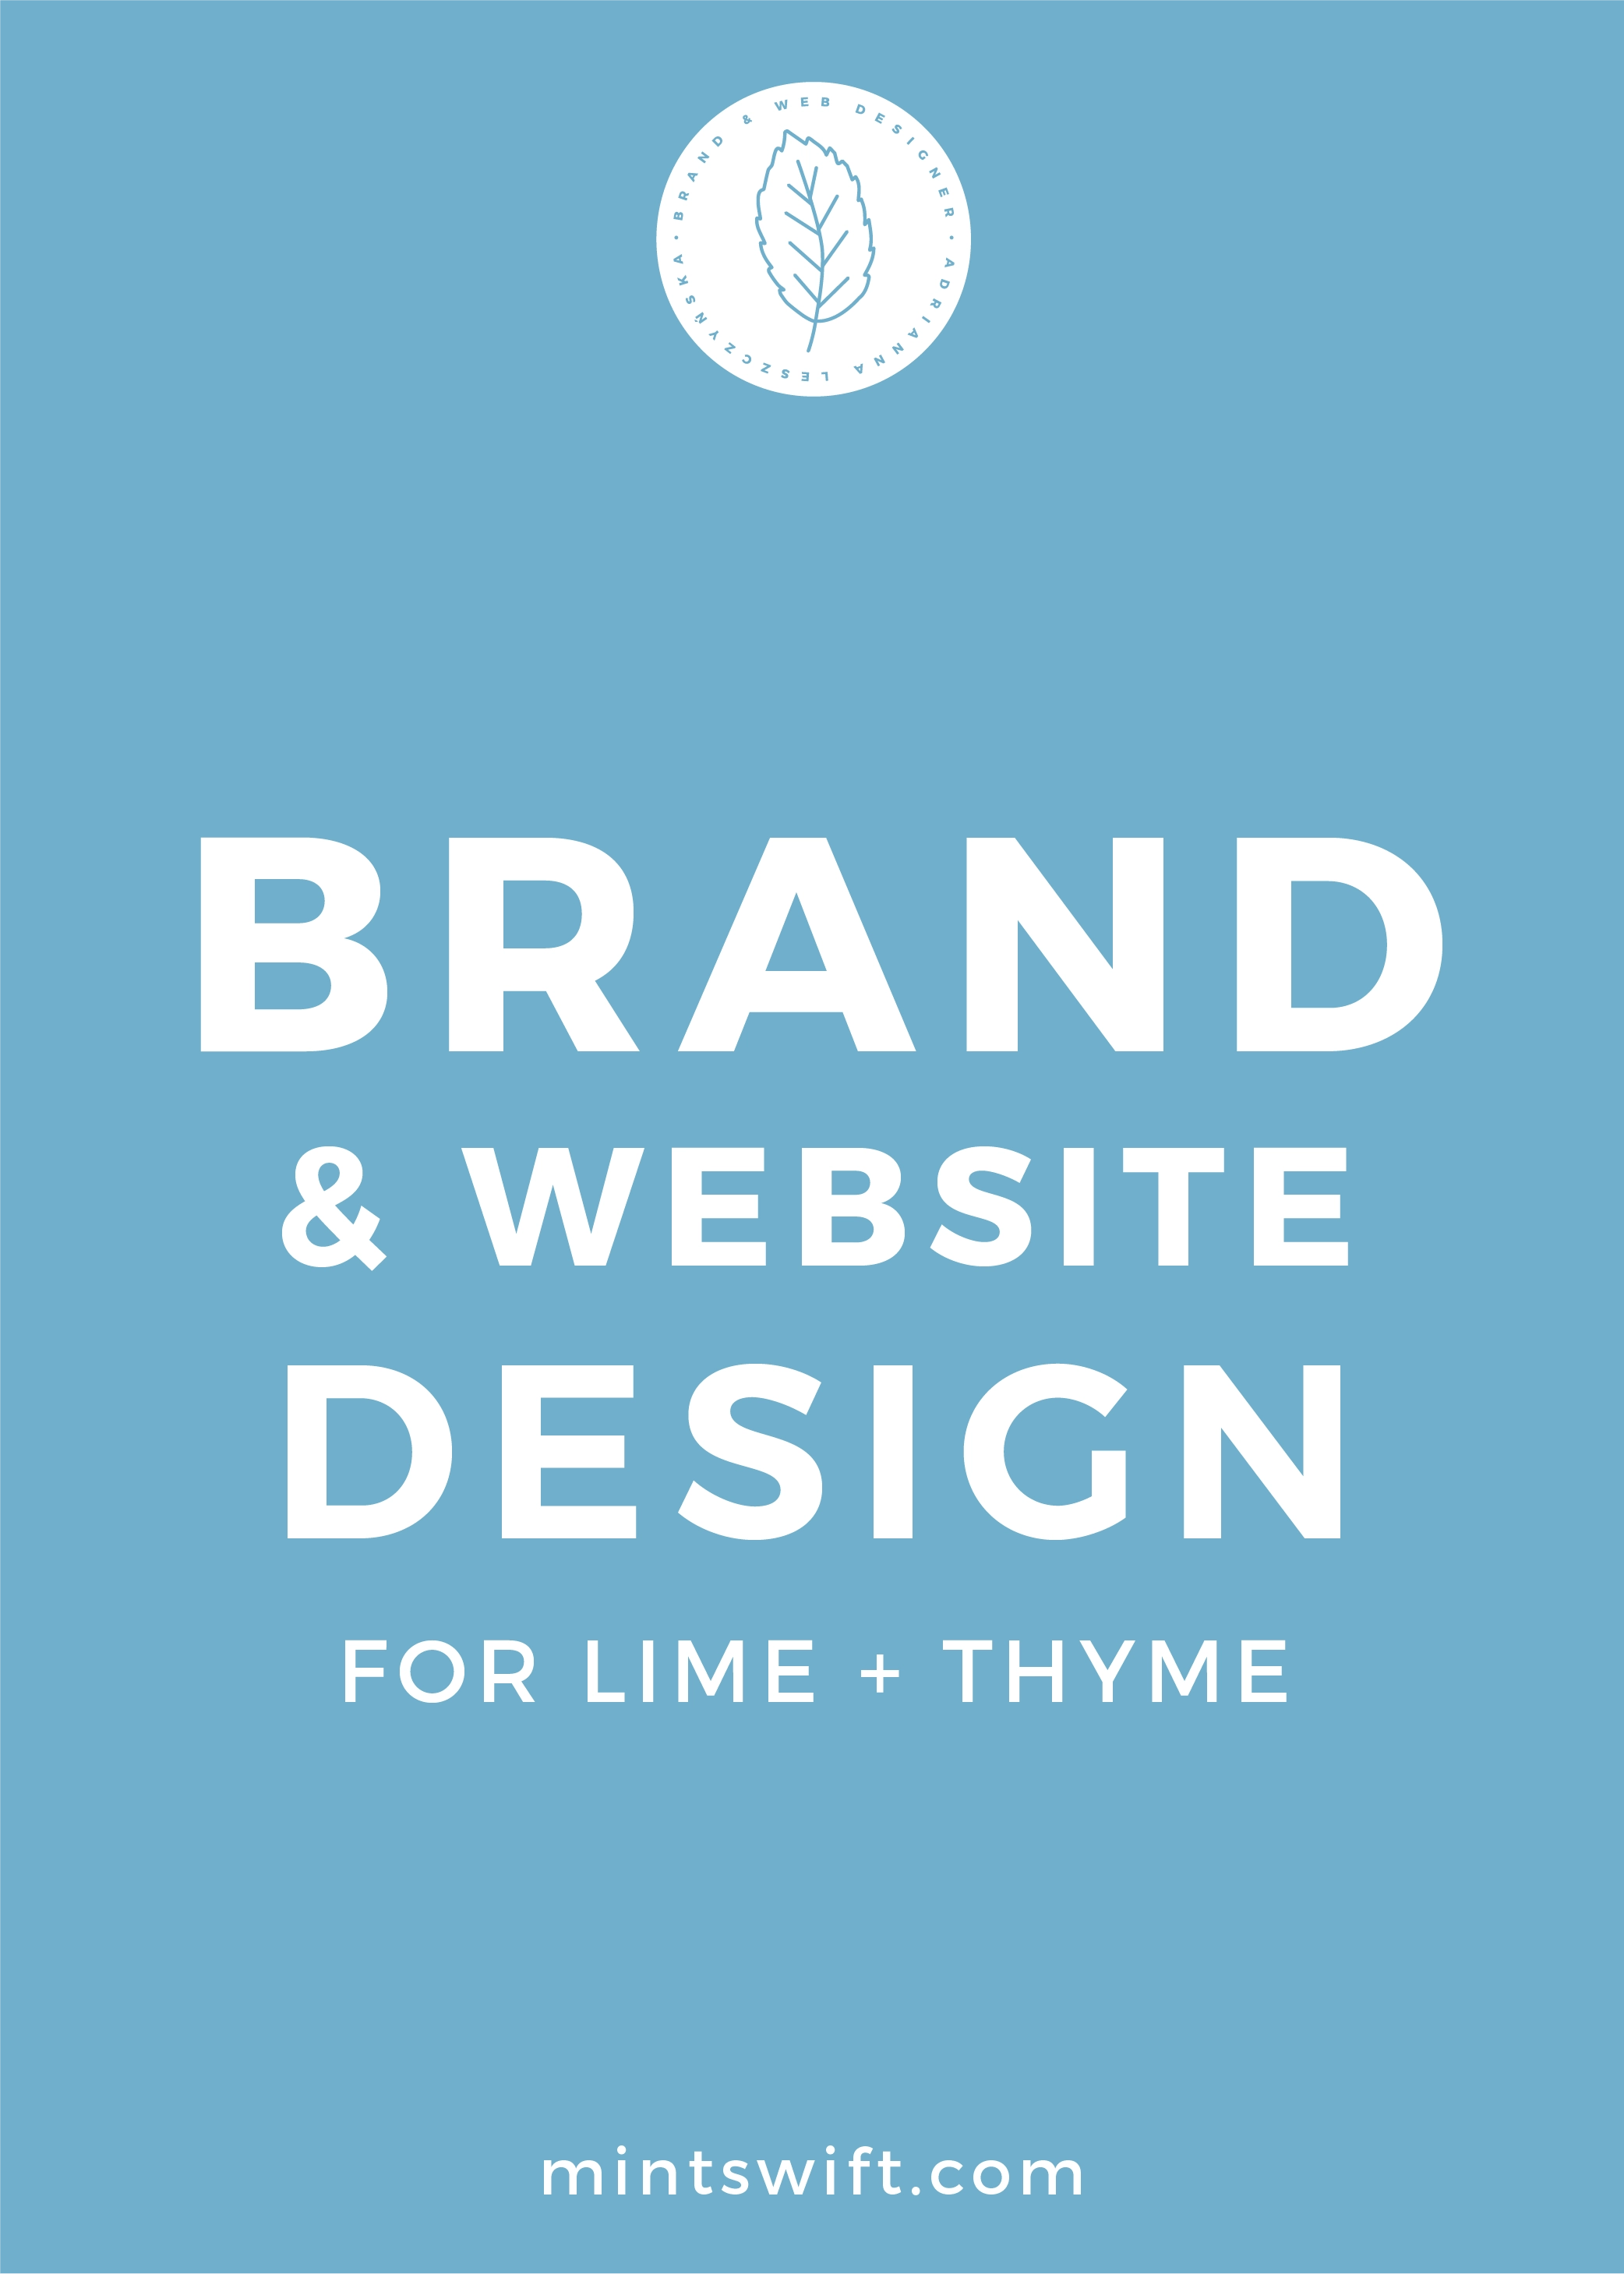 Brand & Website Design for Lime + Thyme